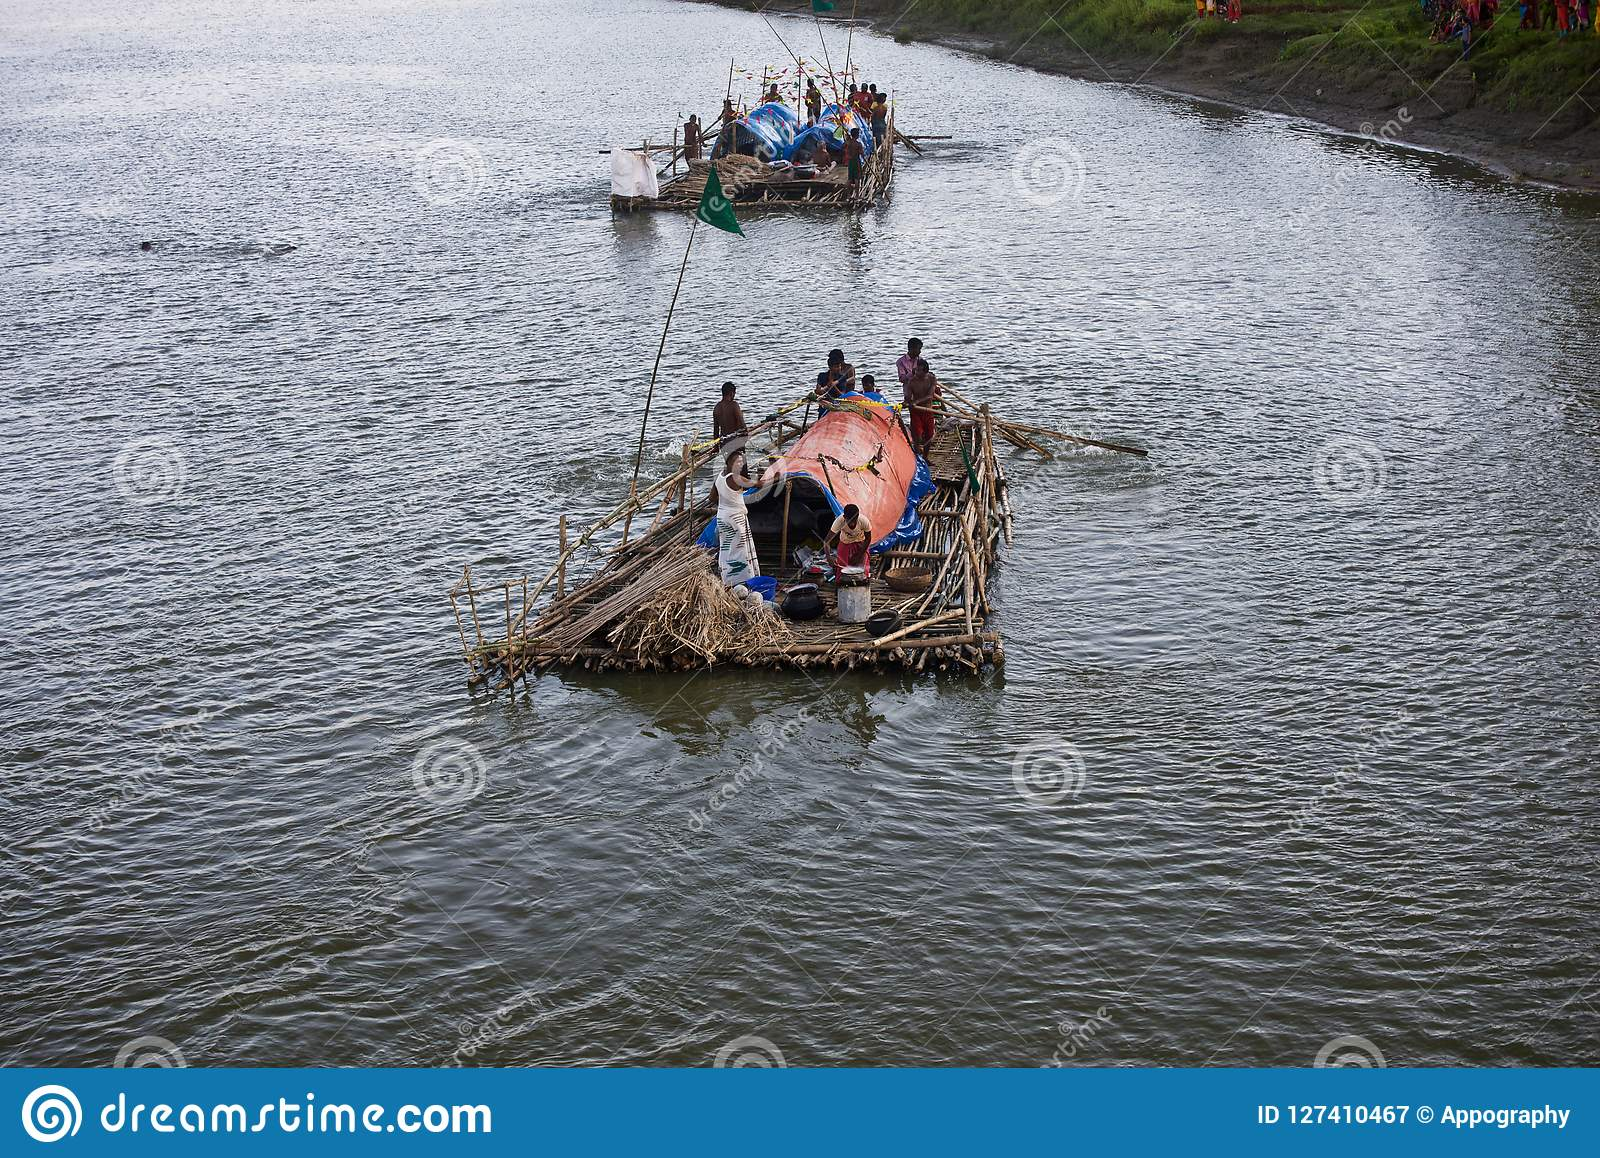 People travelling on the boat in the river unique editorial image